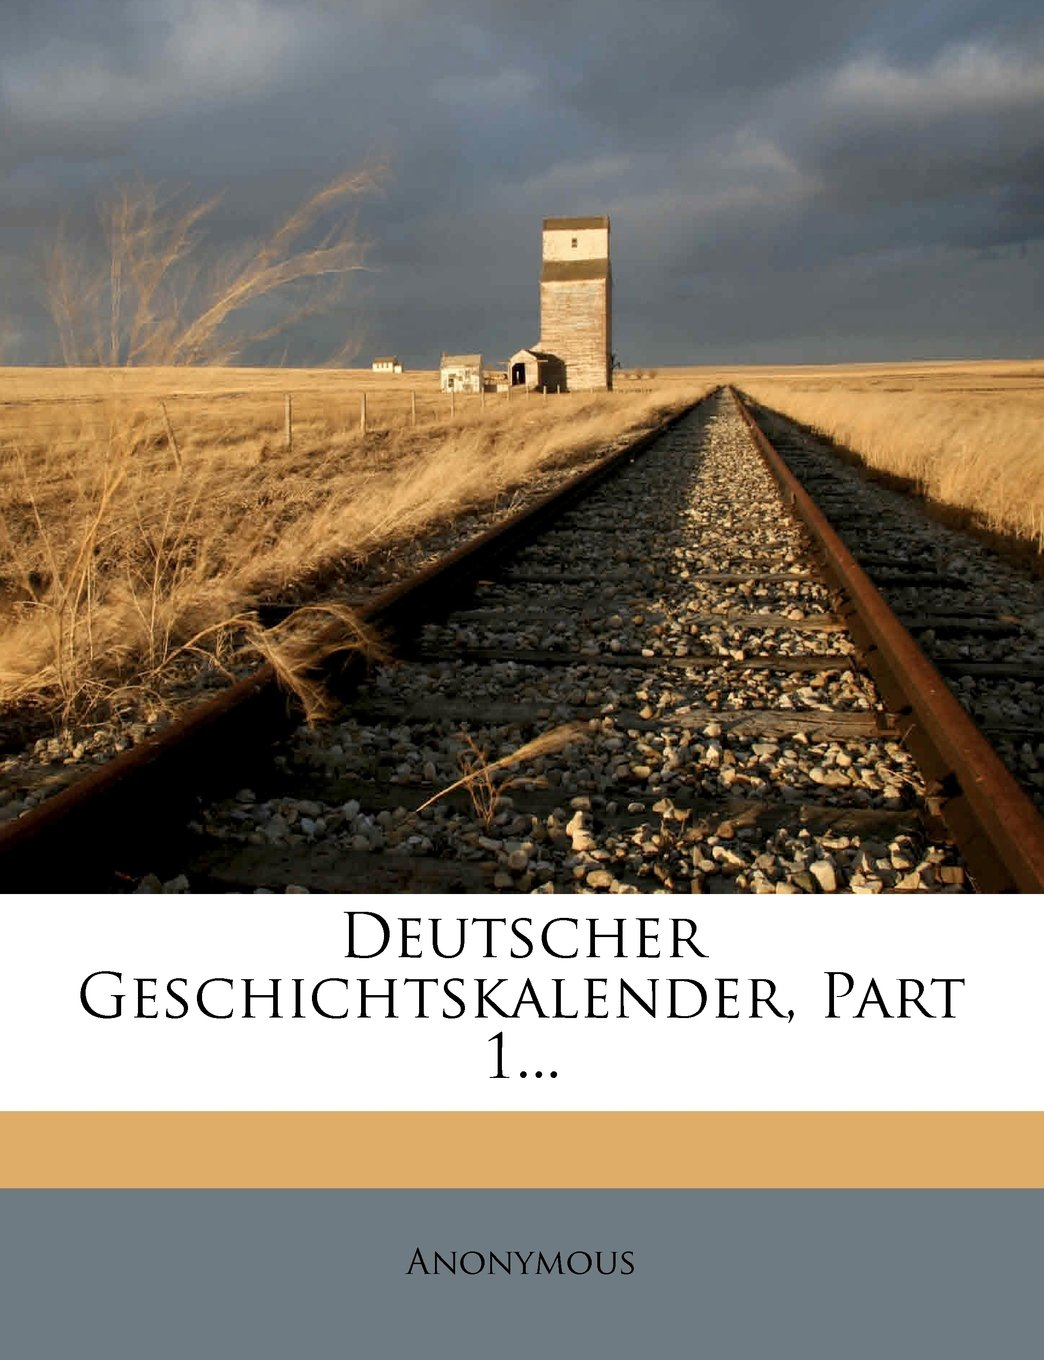 Deutscher Geschichtskalender, Part 1... (German Edition) PDF ePub fb2 book